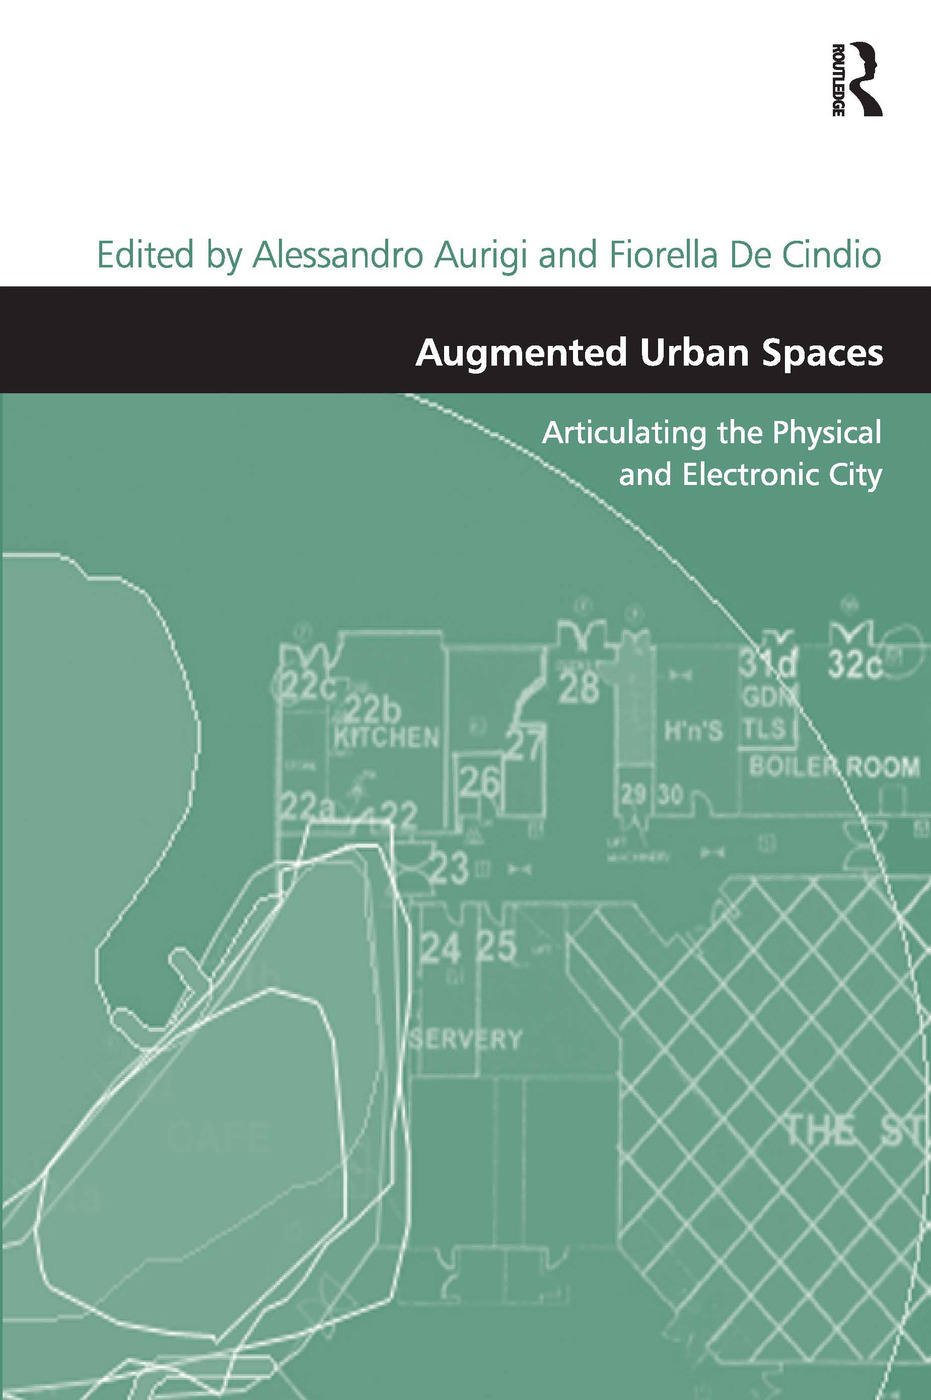 Augmented Urban Spaces